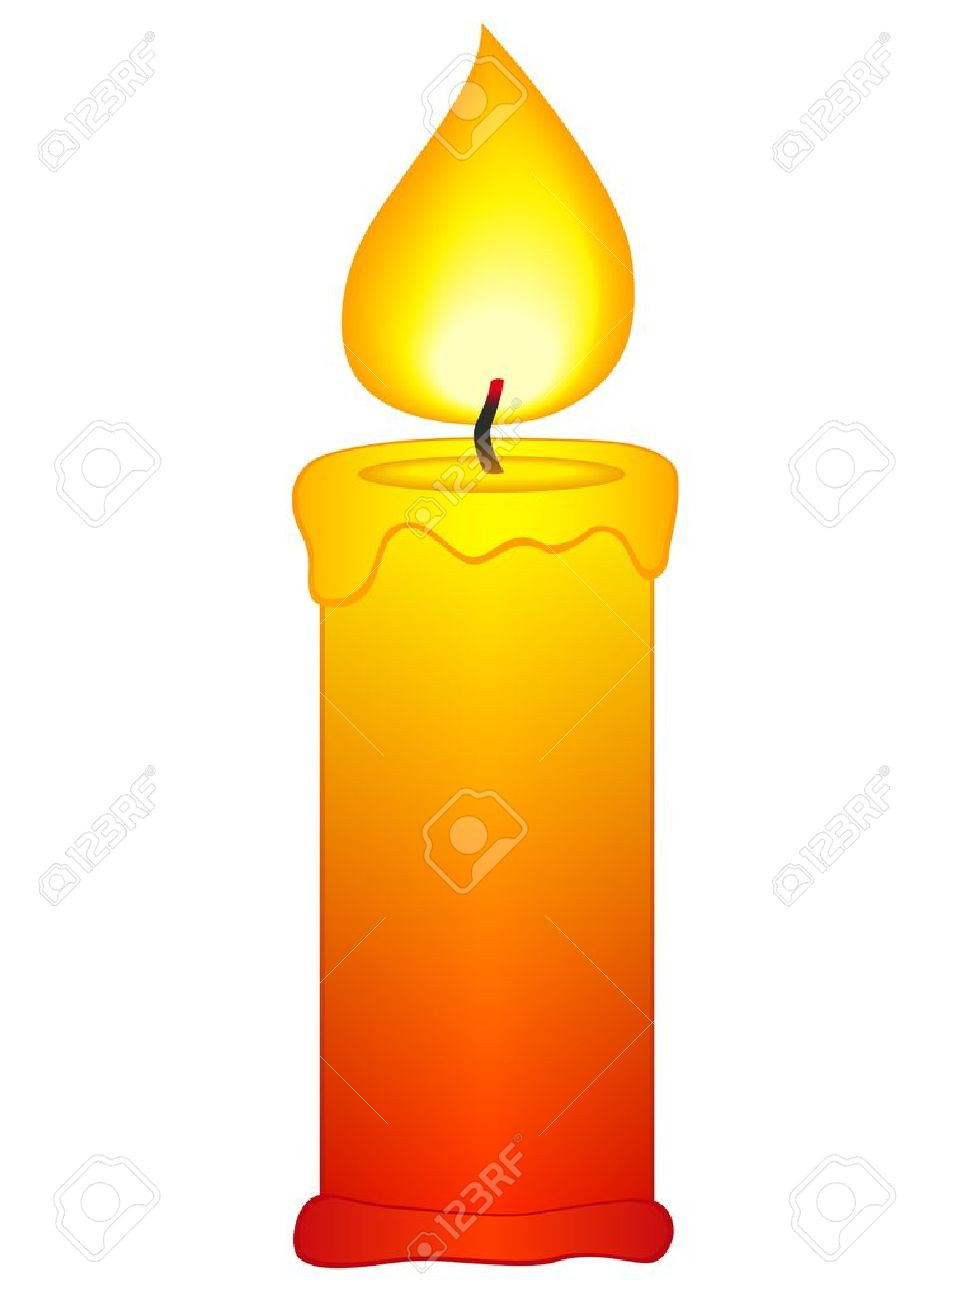 Candle flame free download. Candles clipart single